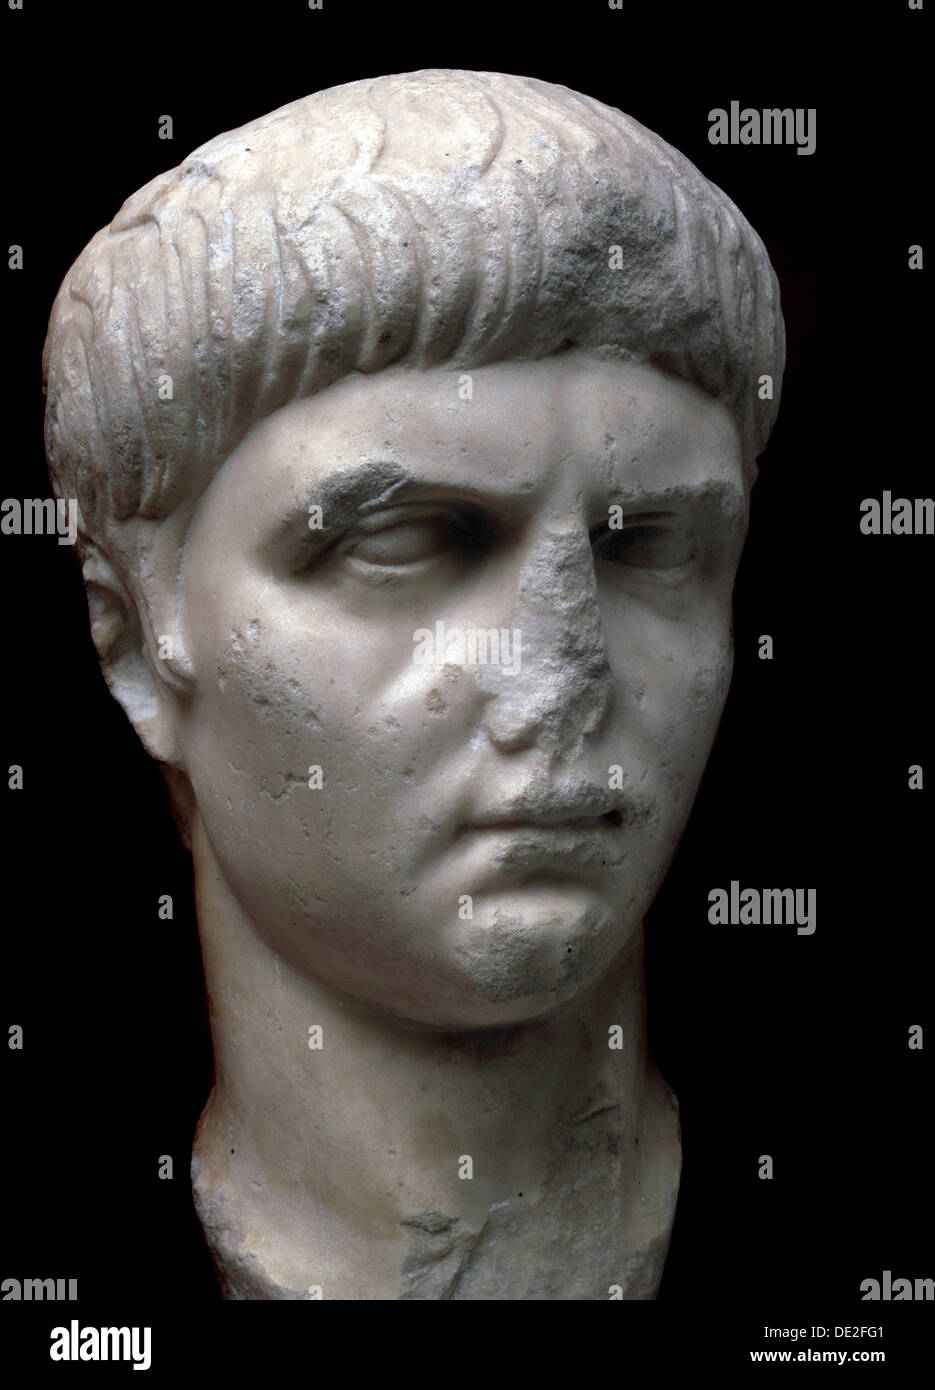 Marble portrait bust of the Roman Emperor Nero, 1st century. - Stock Image